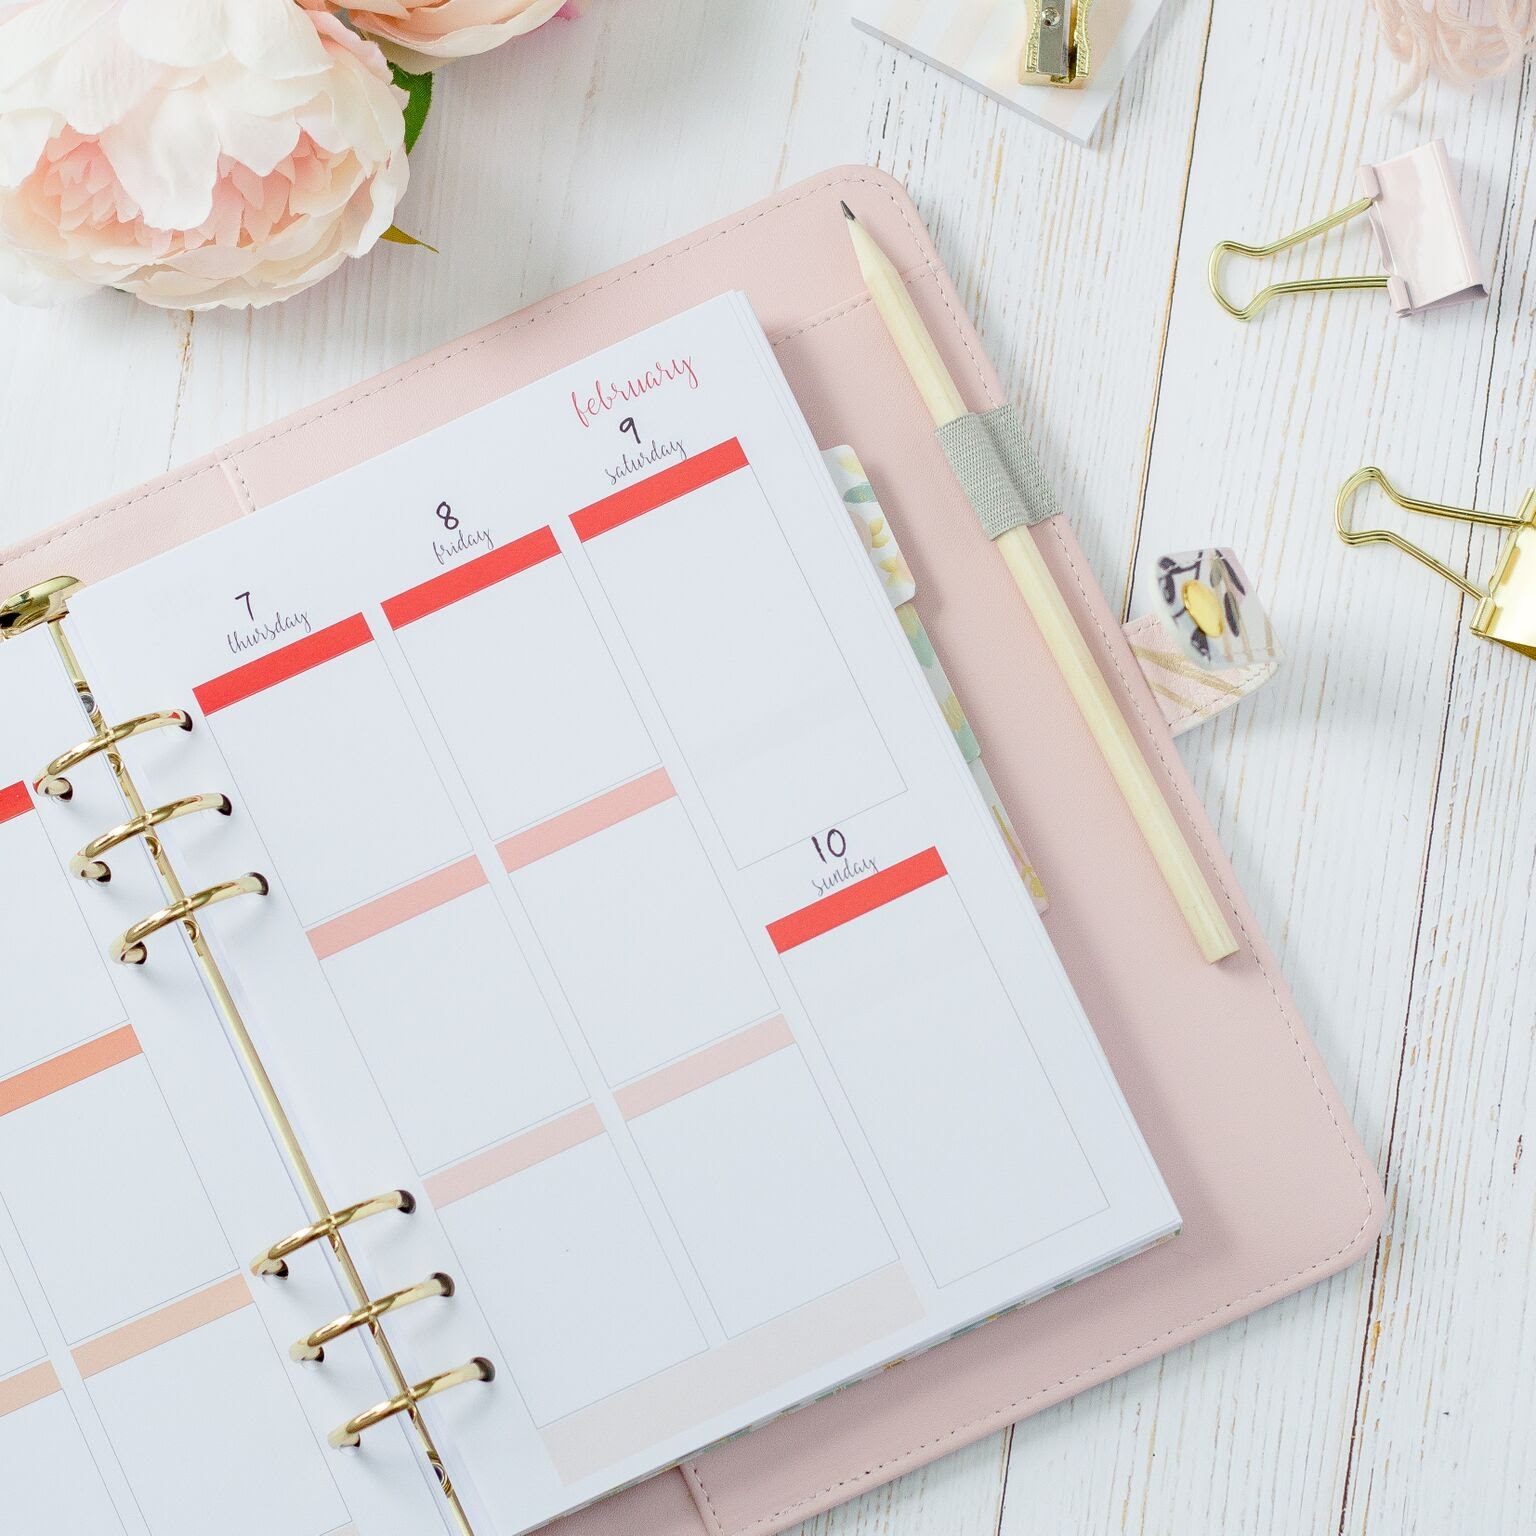 how-i-started-a-12k-month-selling-productivity-planners-online